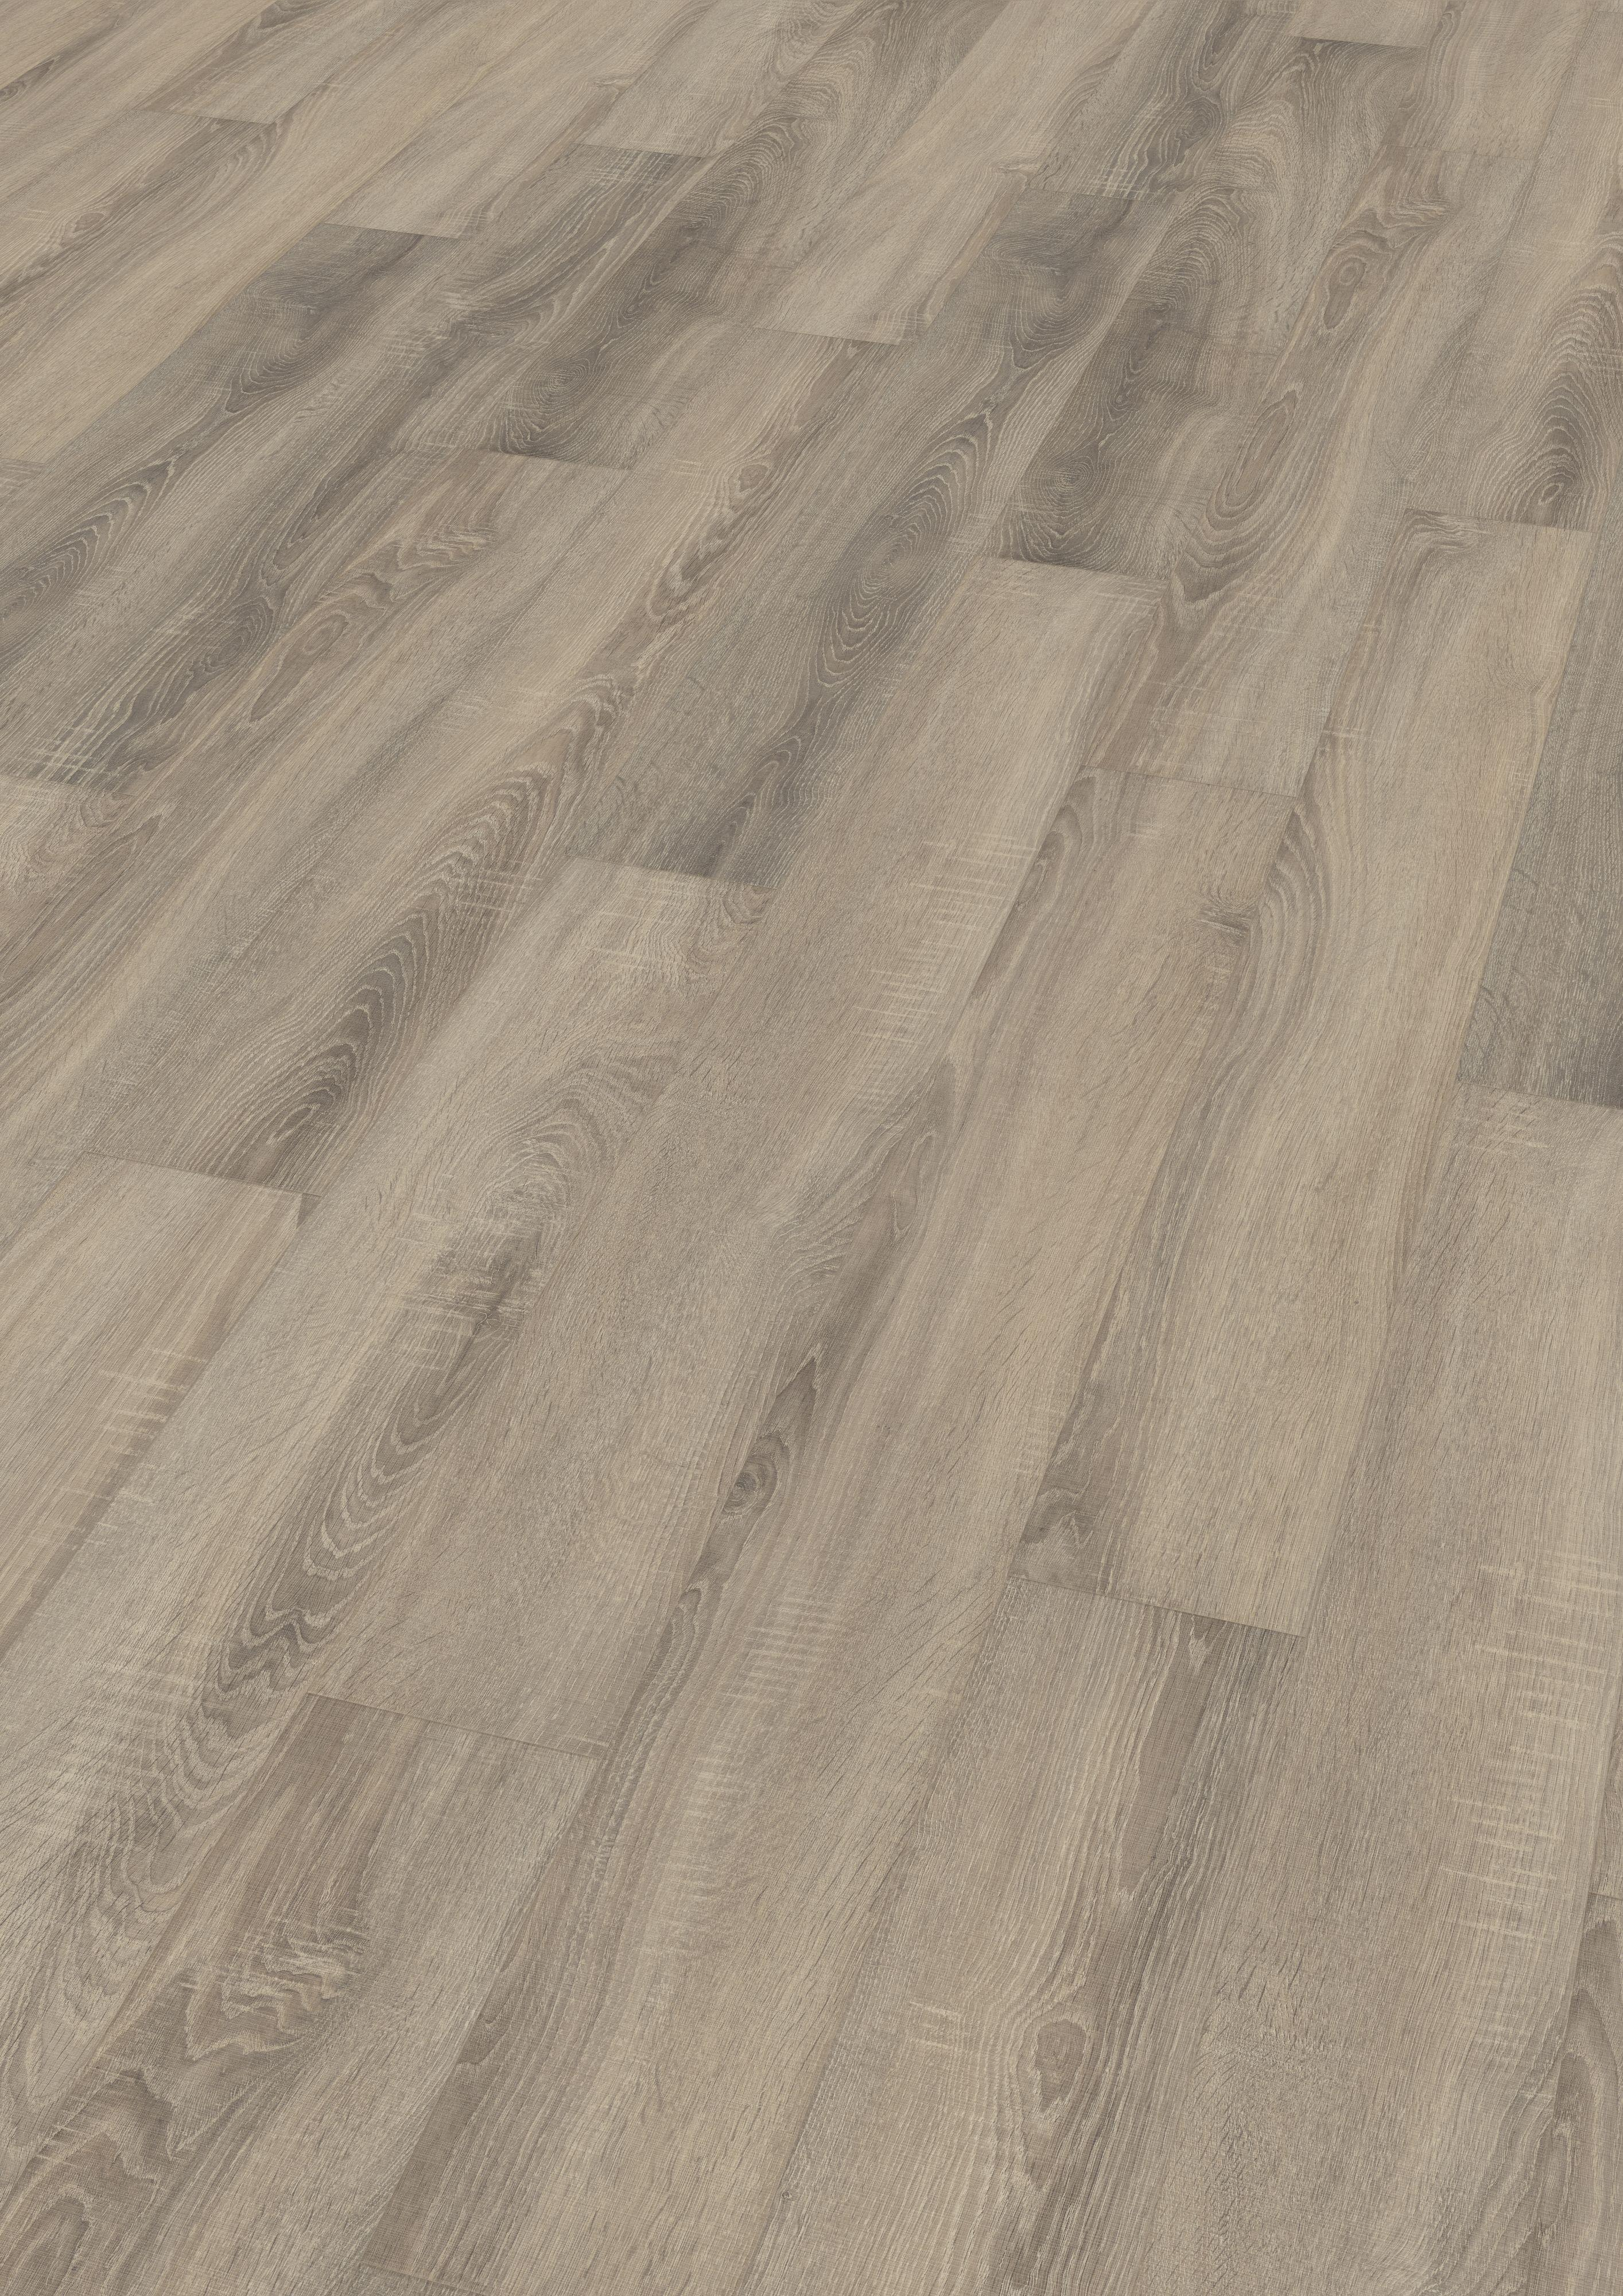 La048sv4 traditional oak grey